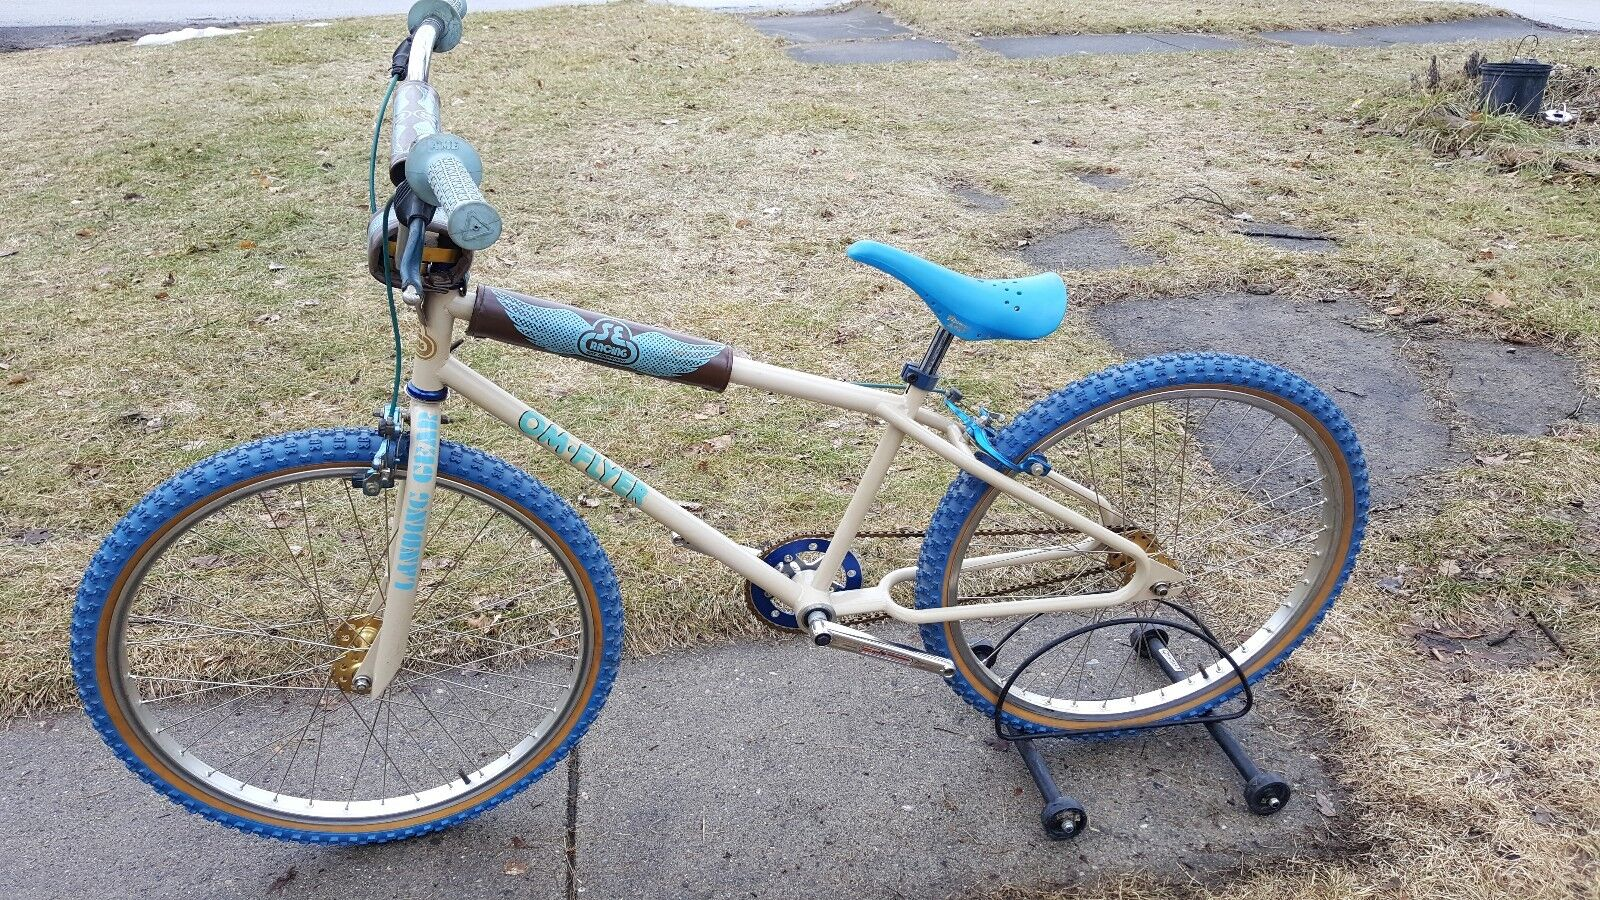 OLD SCHOOL BMX 1980 SE RACING OM FLYER RARE  COWBOY CUT FORKS 26  CRUISER VINTAGE  save 60% discount and fast shipping worldwide